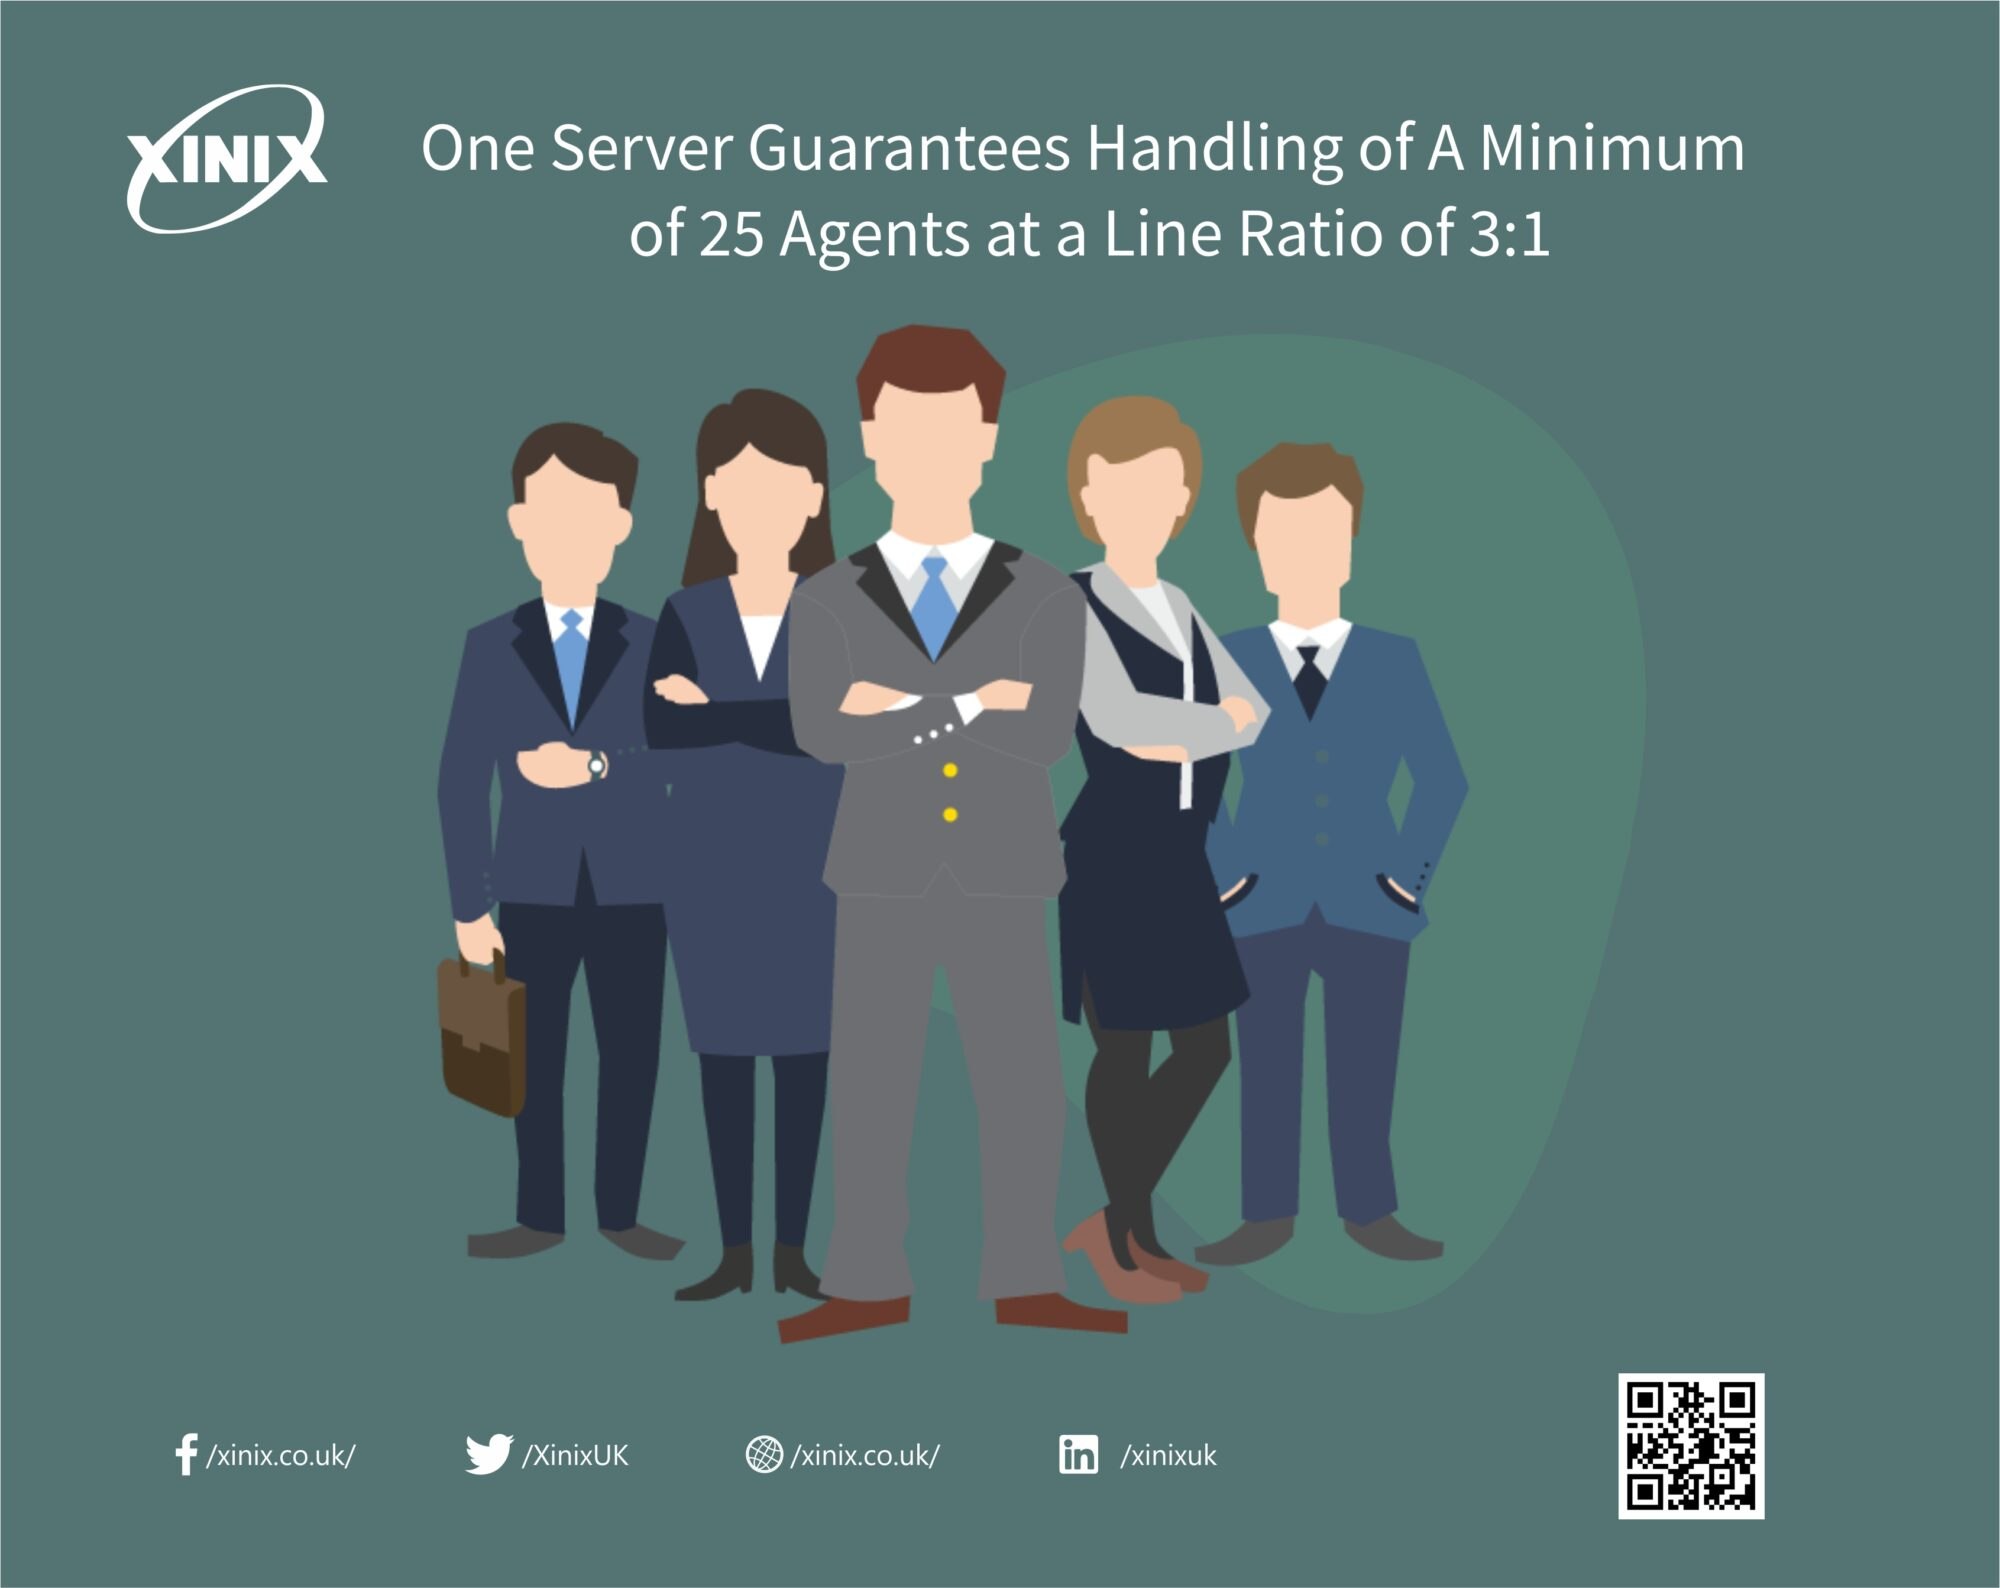 One Server Guarantees Handling of A Minimum of 25 Agents at a Line Ratio of 3:1